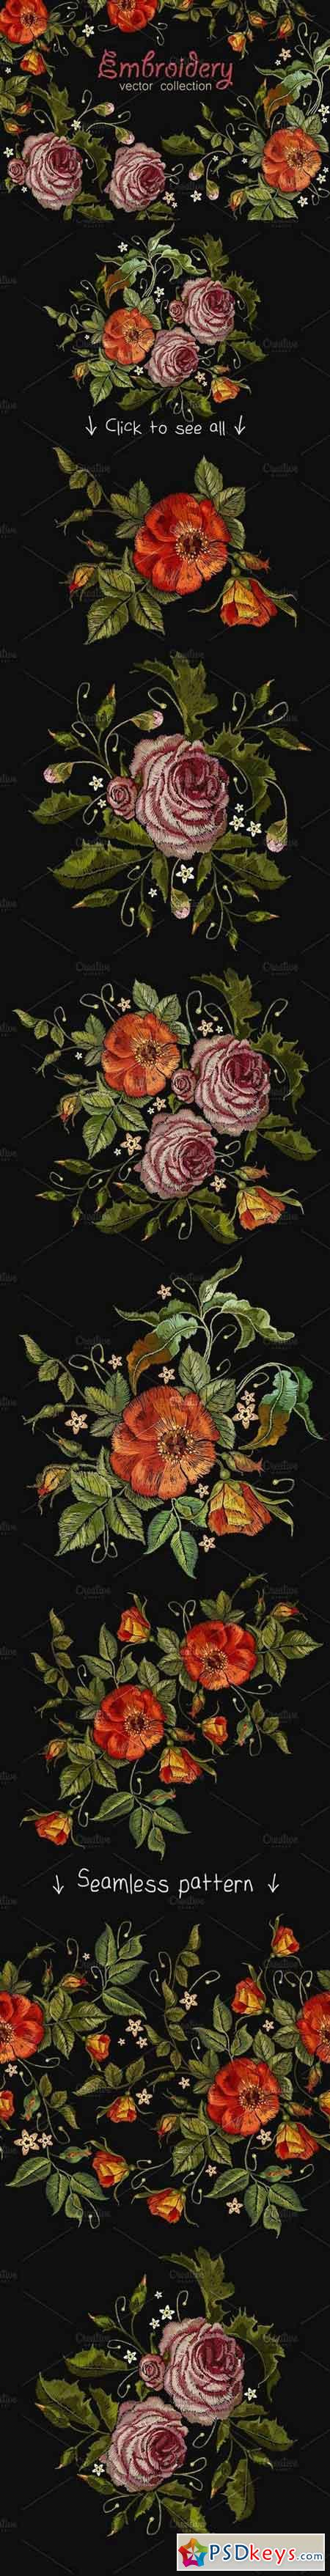 Roses embroidery 1645706